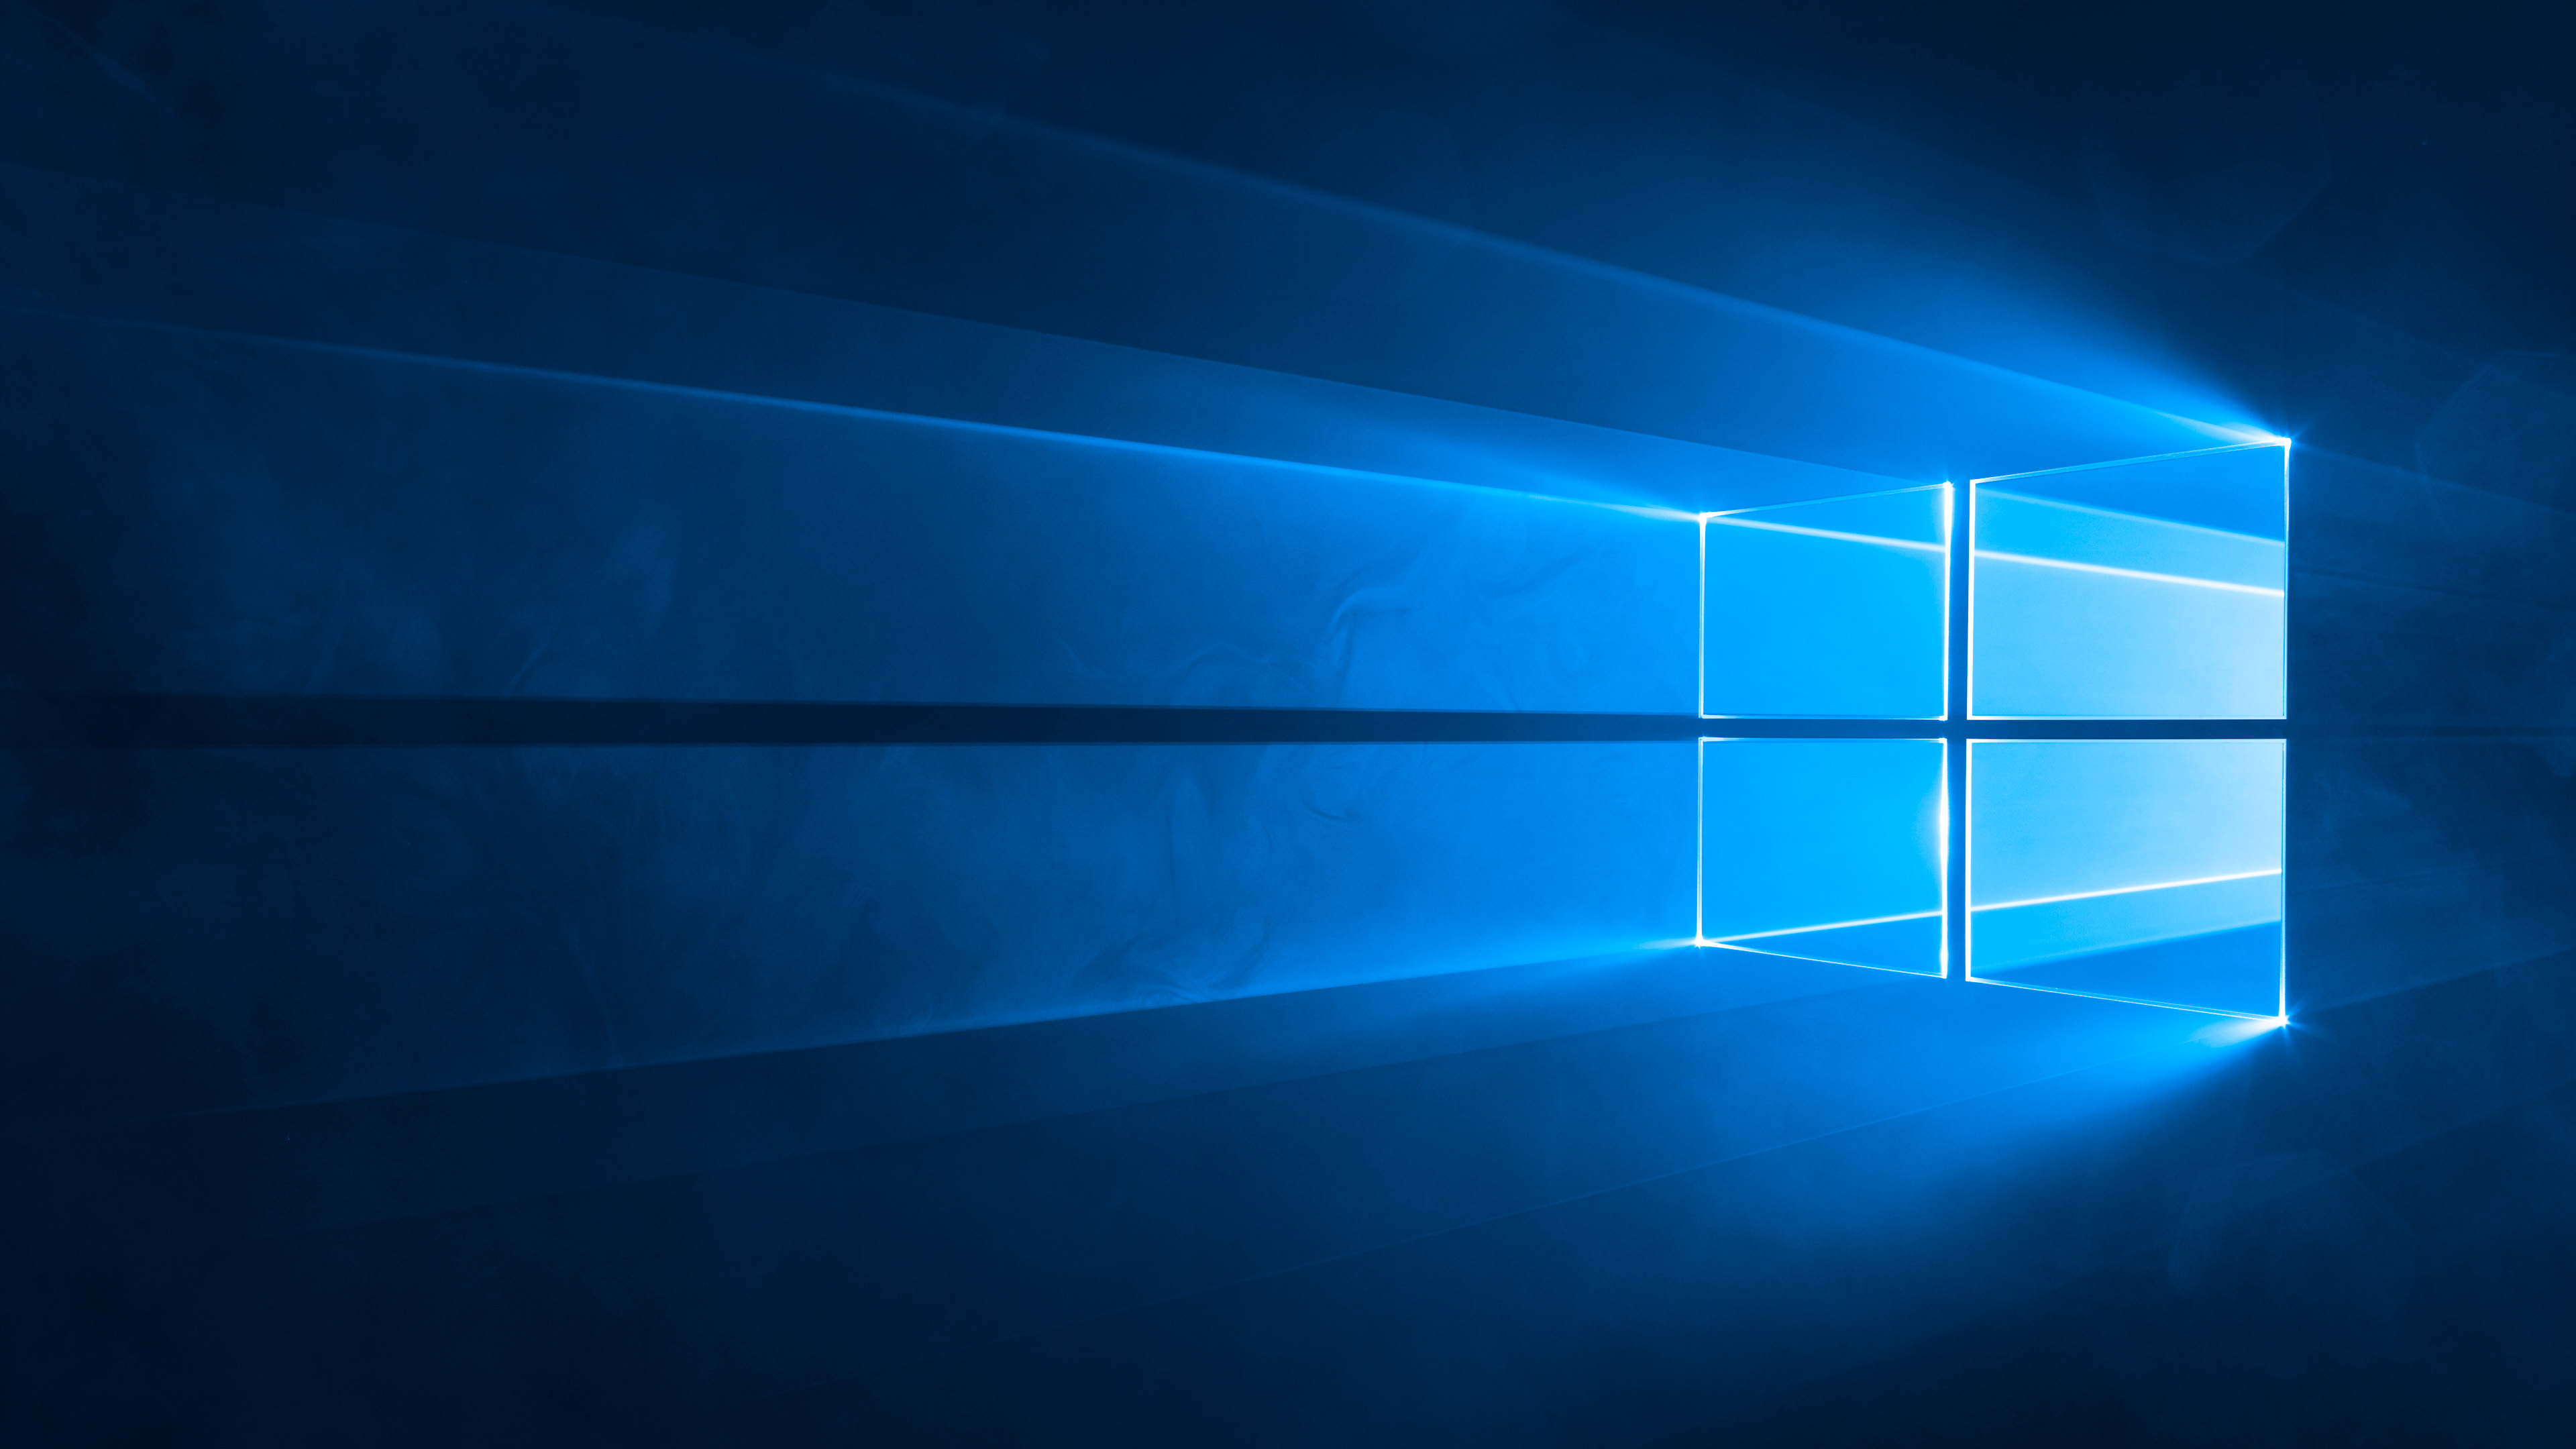 How to change your Windows 10 wallpaper Alphr 3840x2160